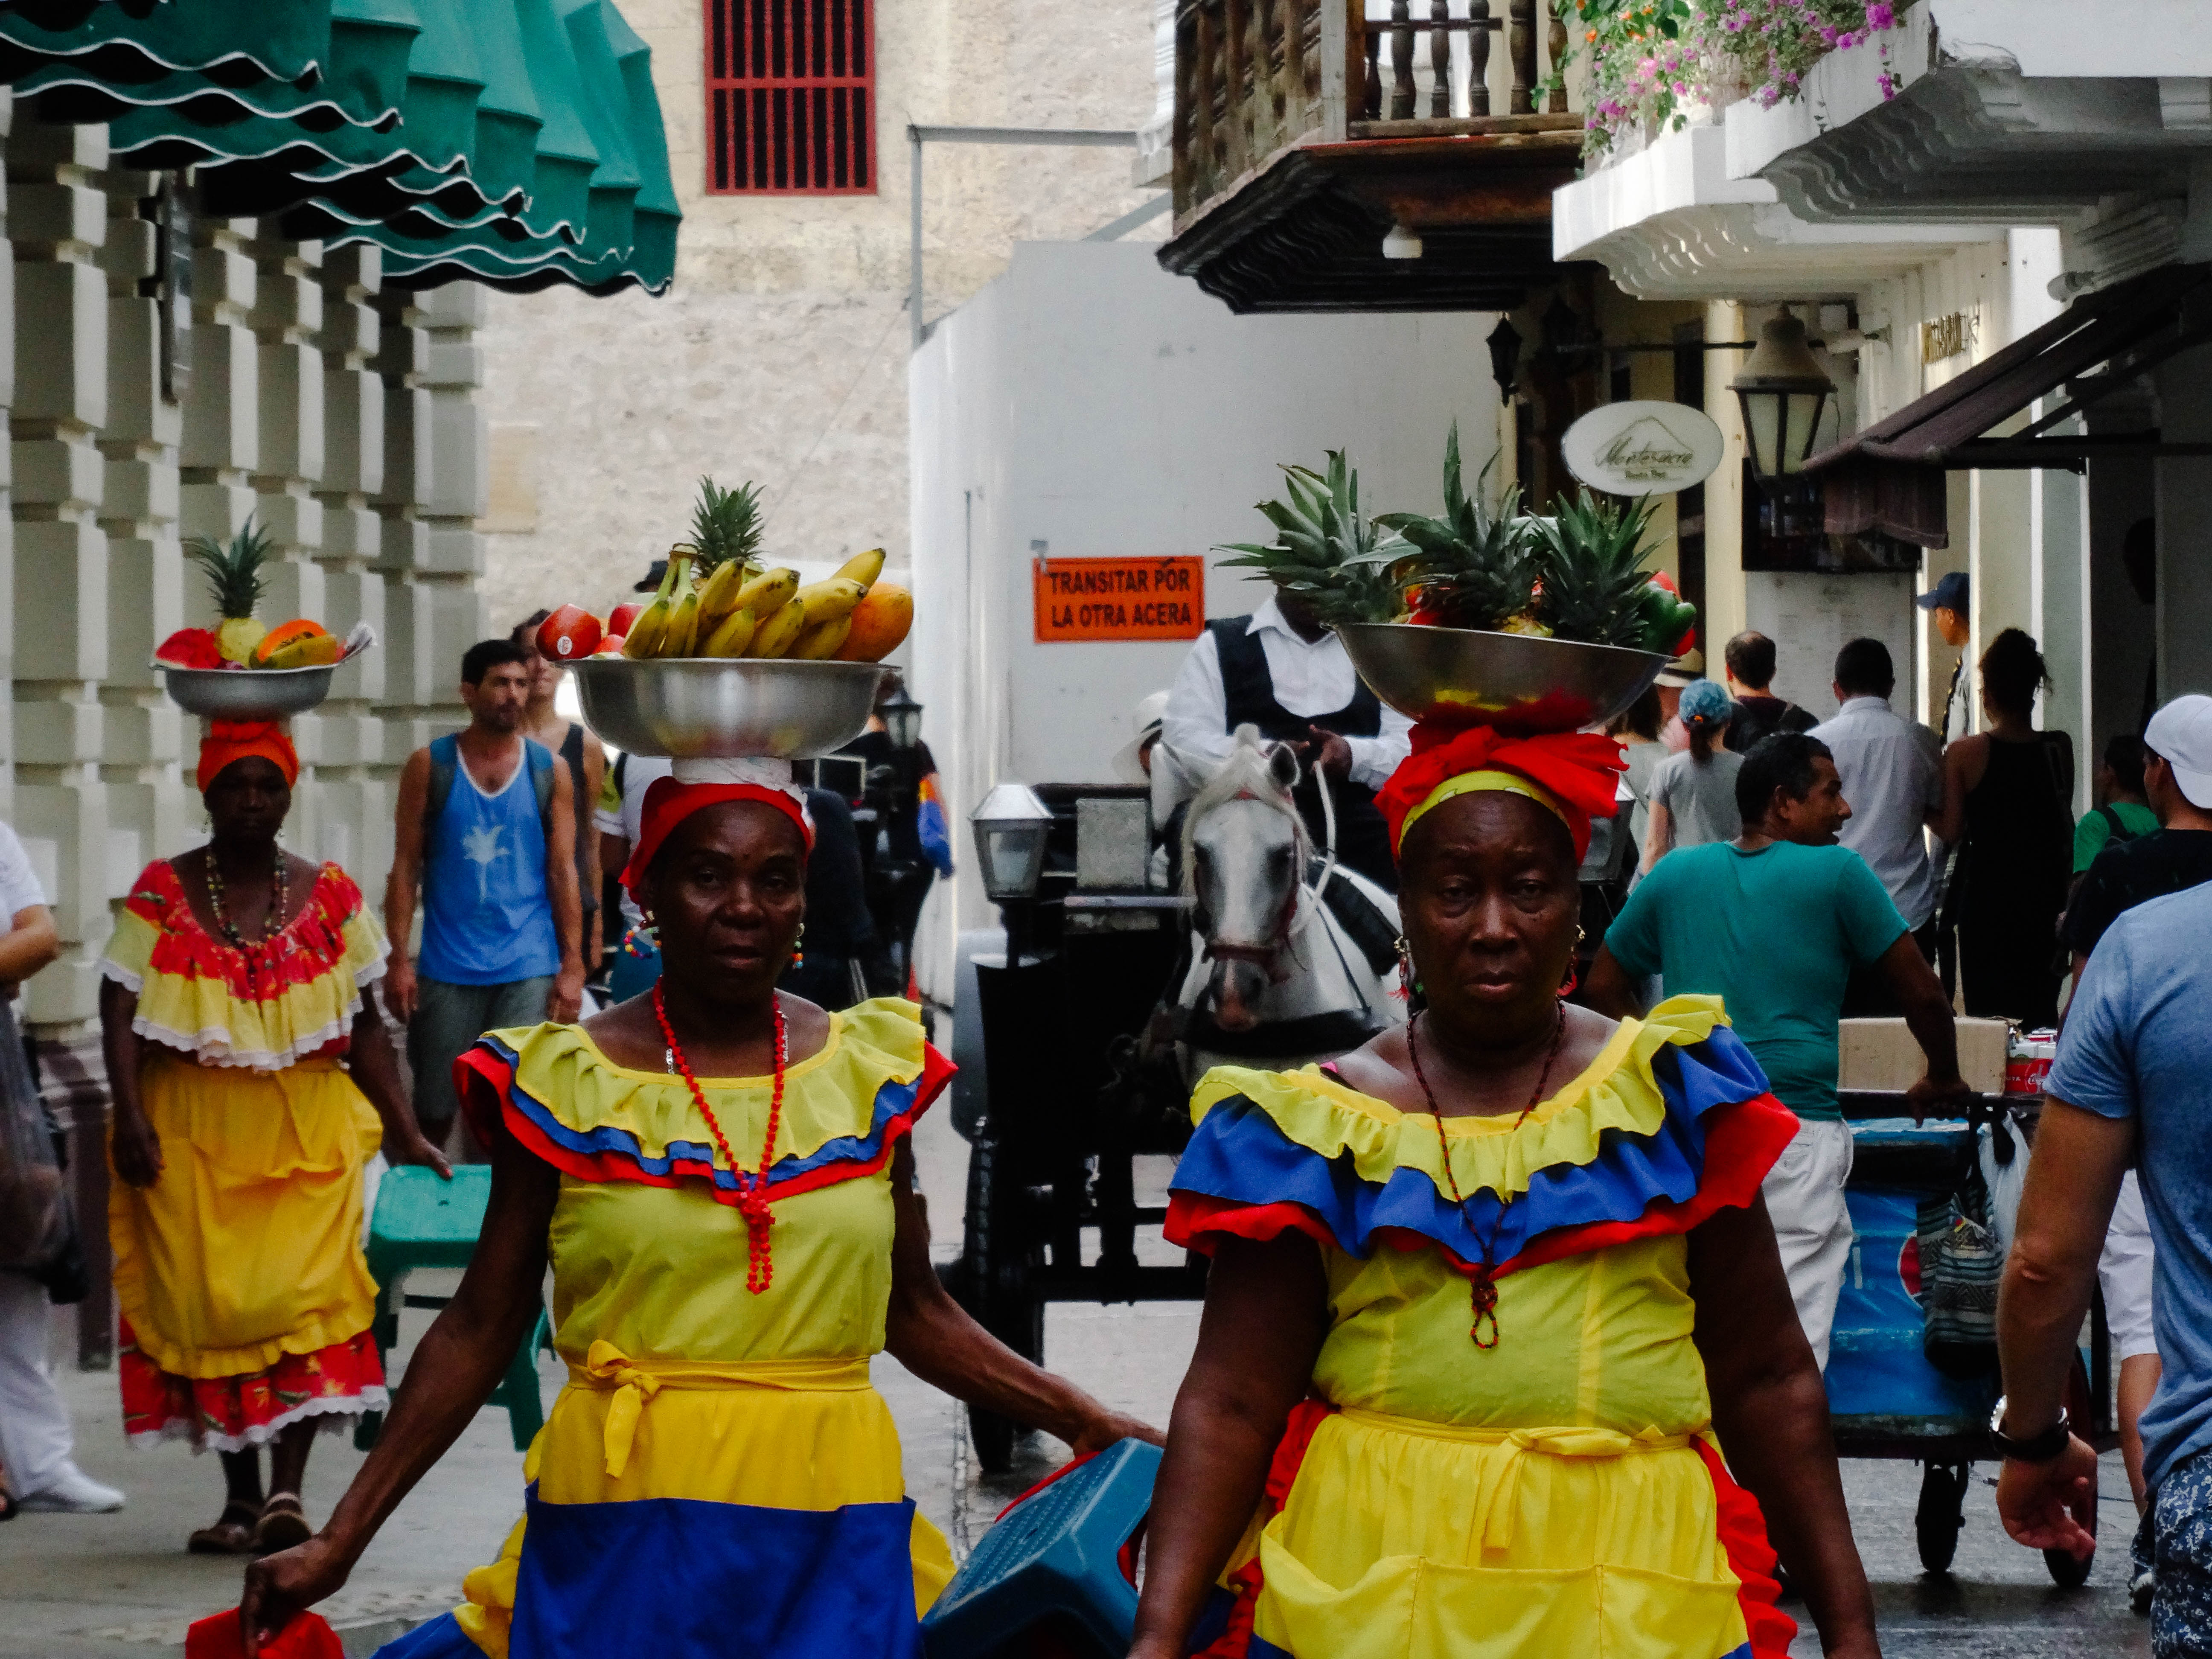 Image for blog article: Cartagena de Indias